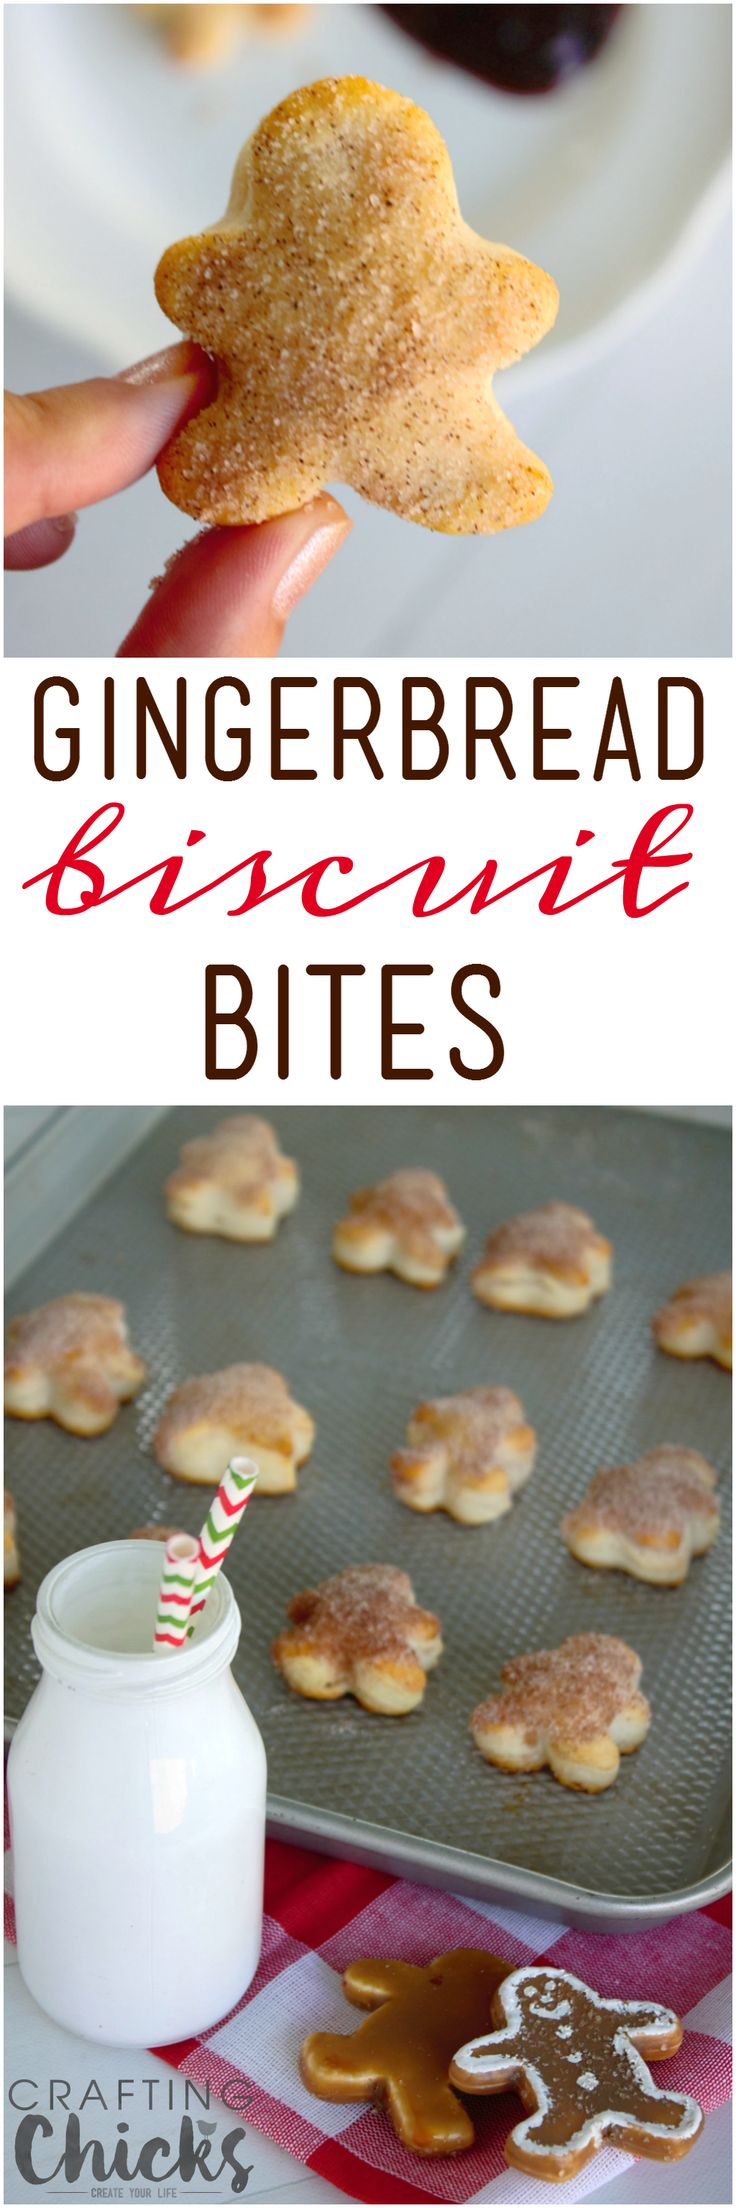 Gingerbread Biscuit Bites are an easy, delicious sweet treat for your holiday breakfasts!